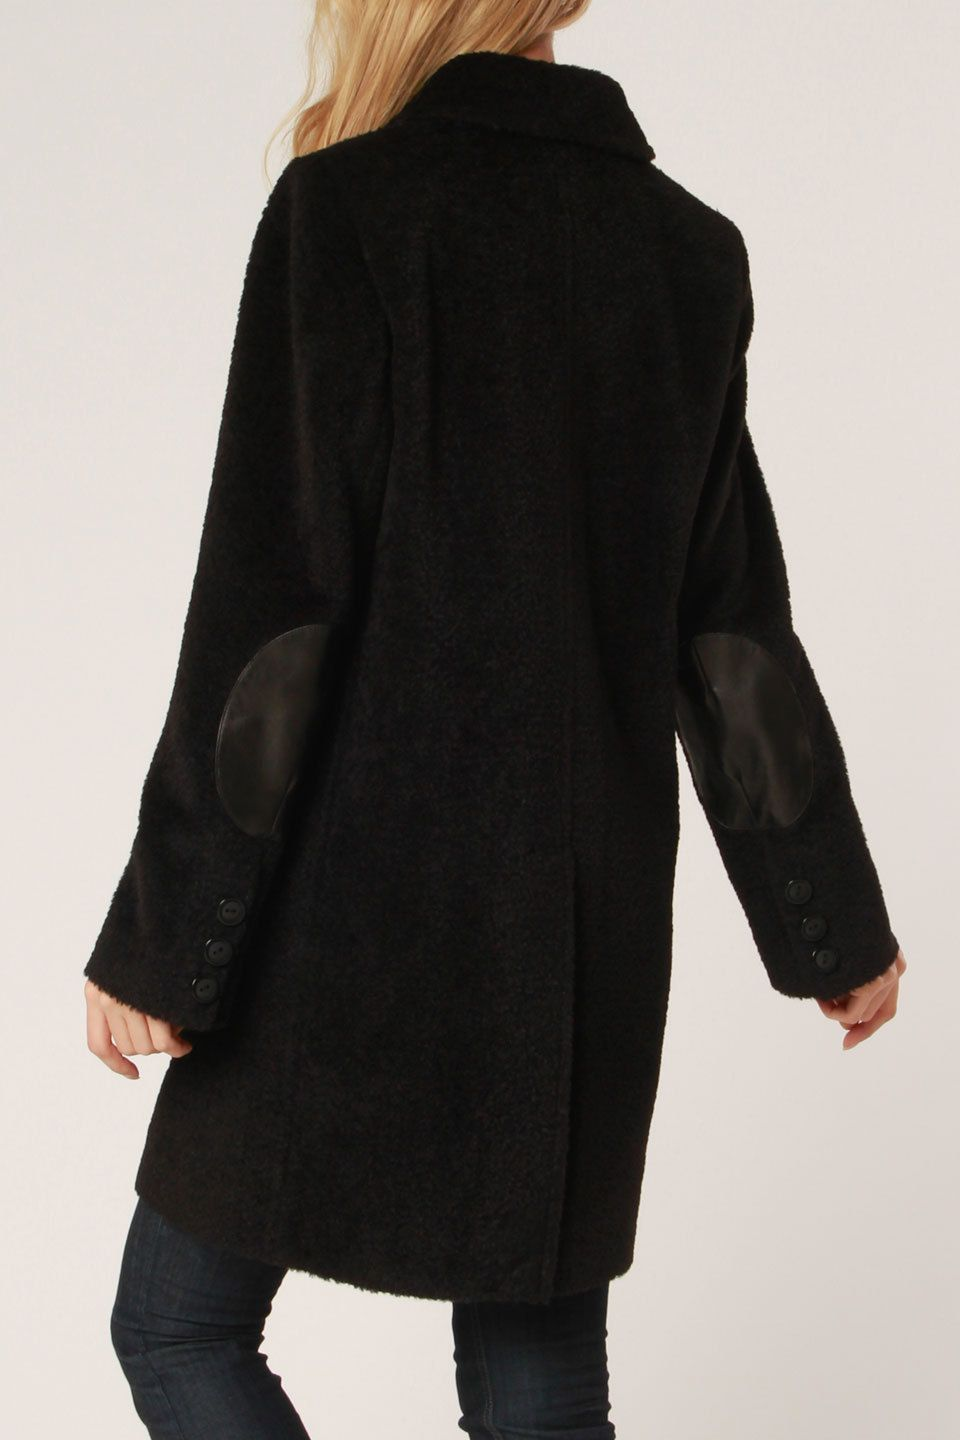 23a98649601 I love elbow patches on coats. Diva by Dale Dressin Emily Jacket ...